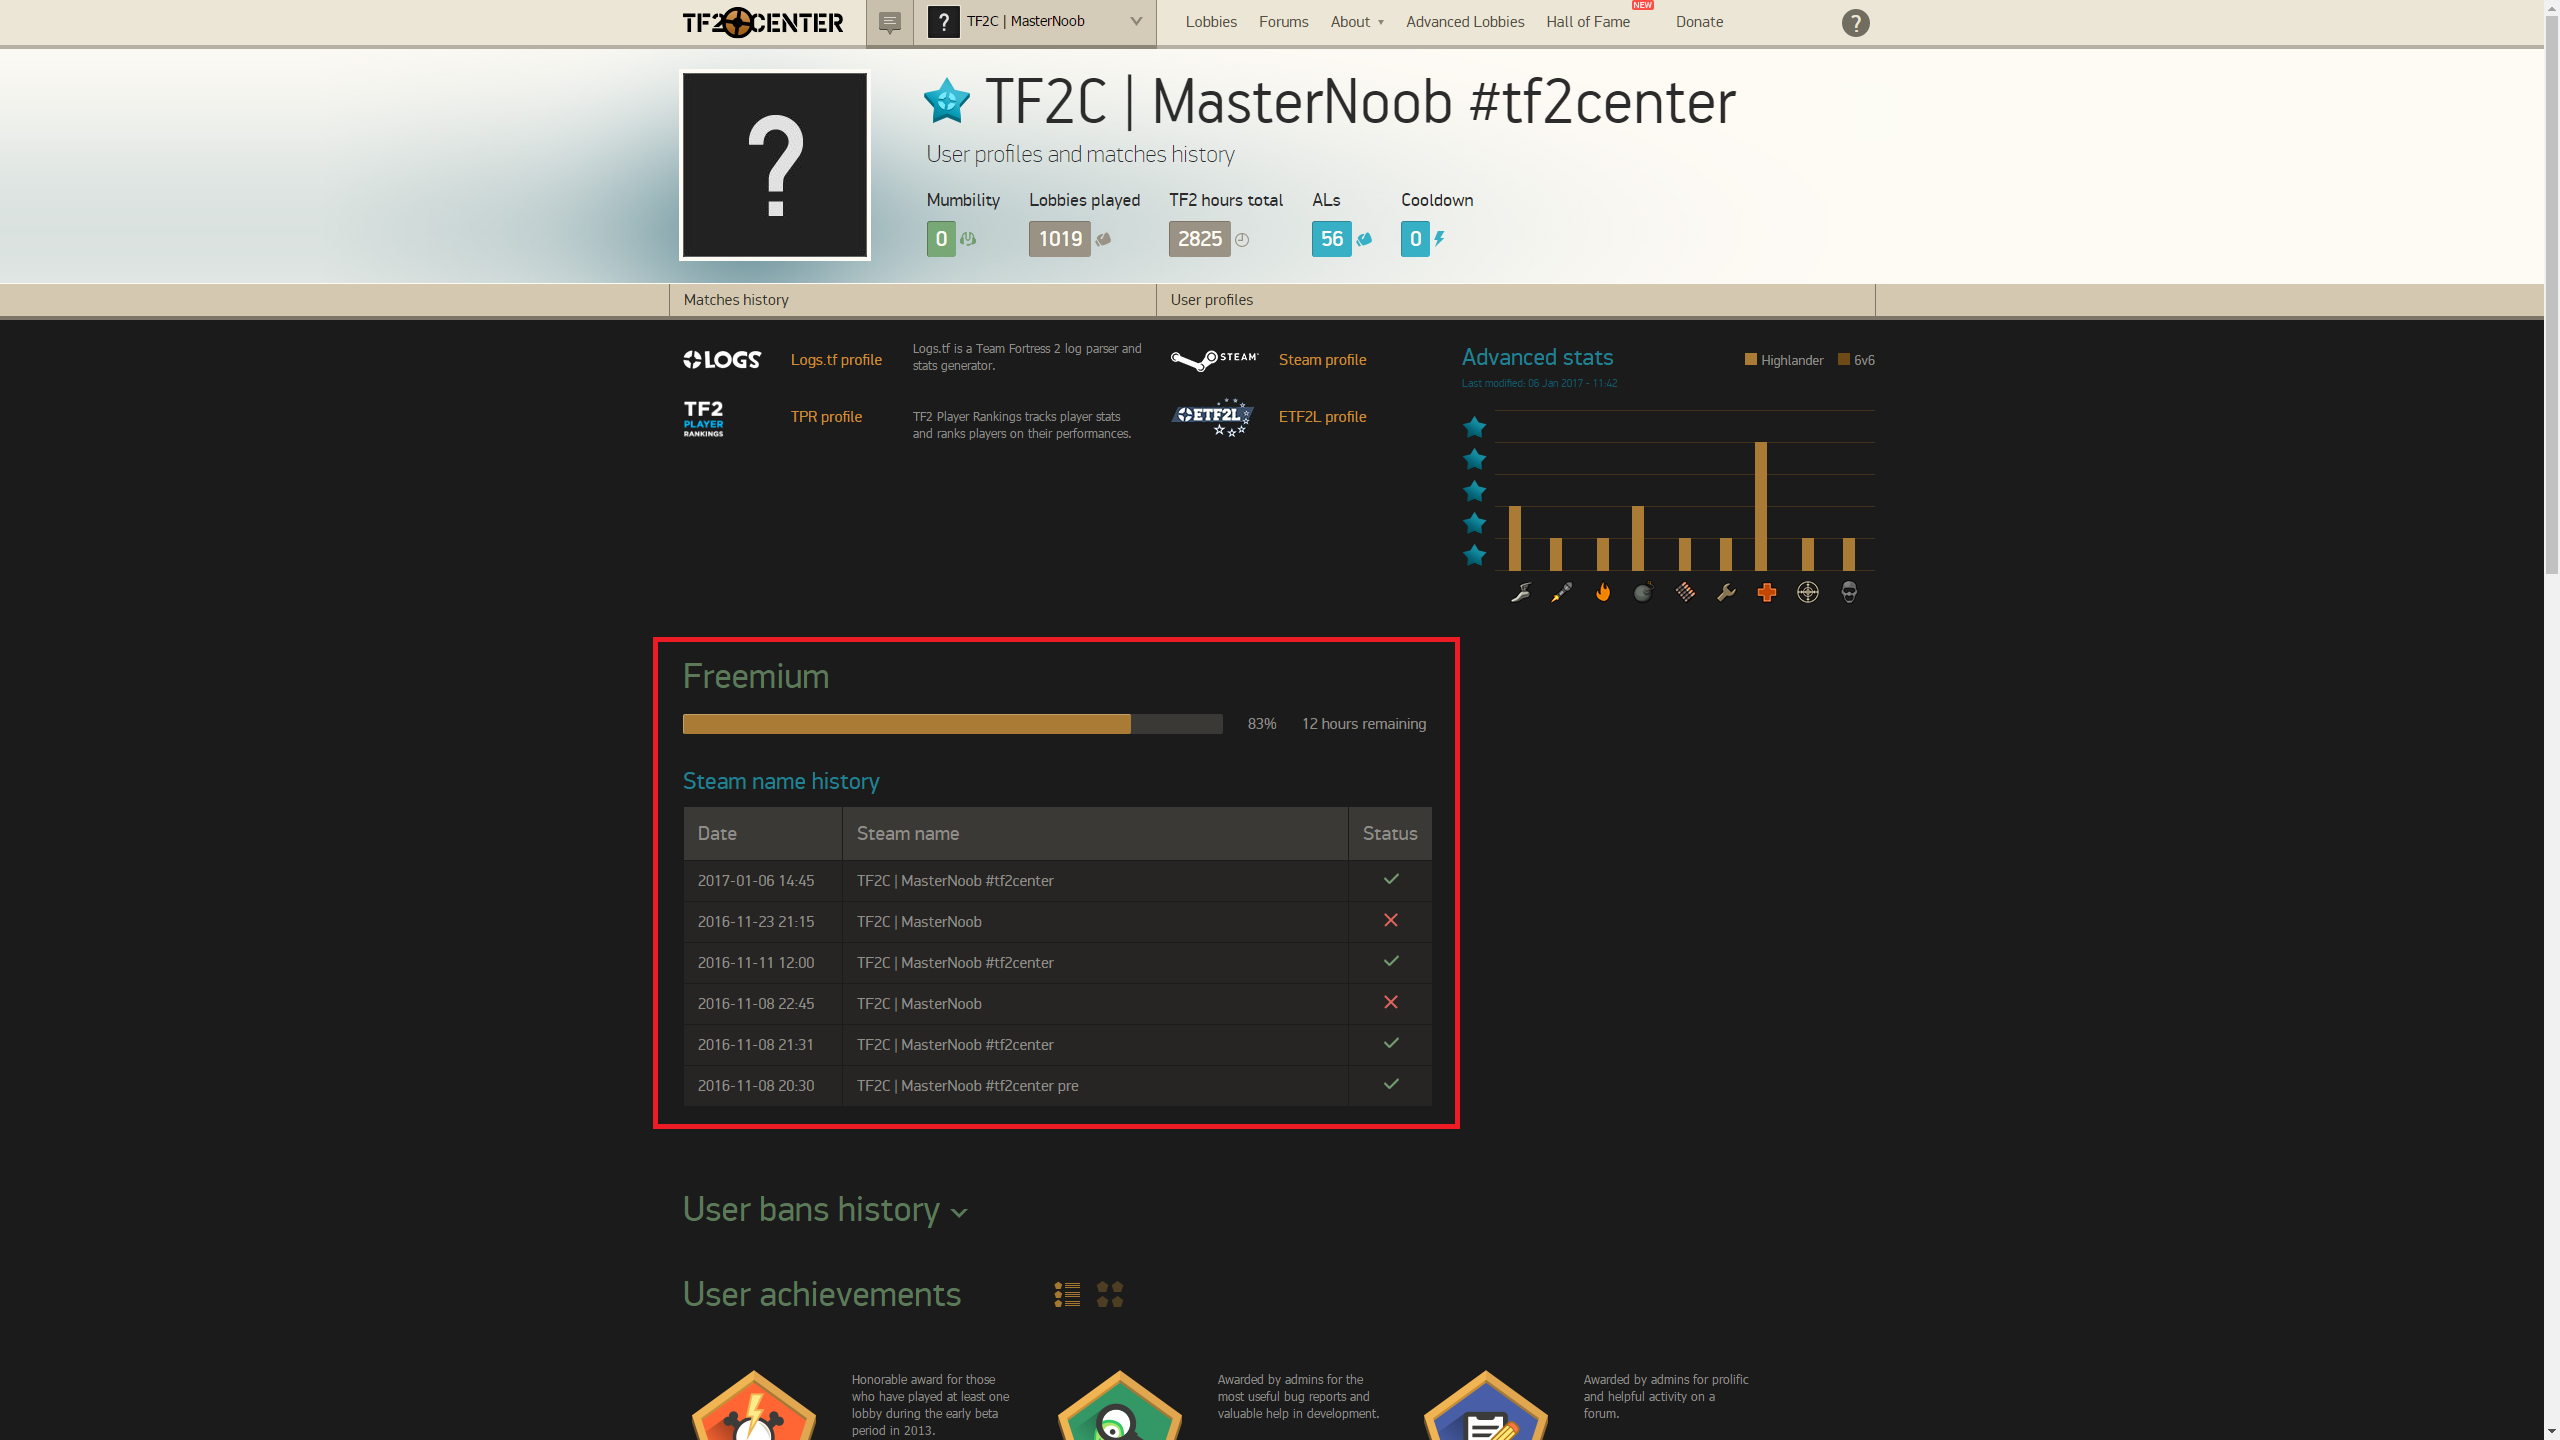 Freemium at TF2Center Profile